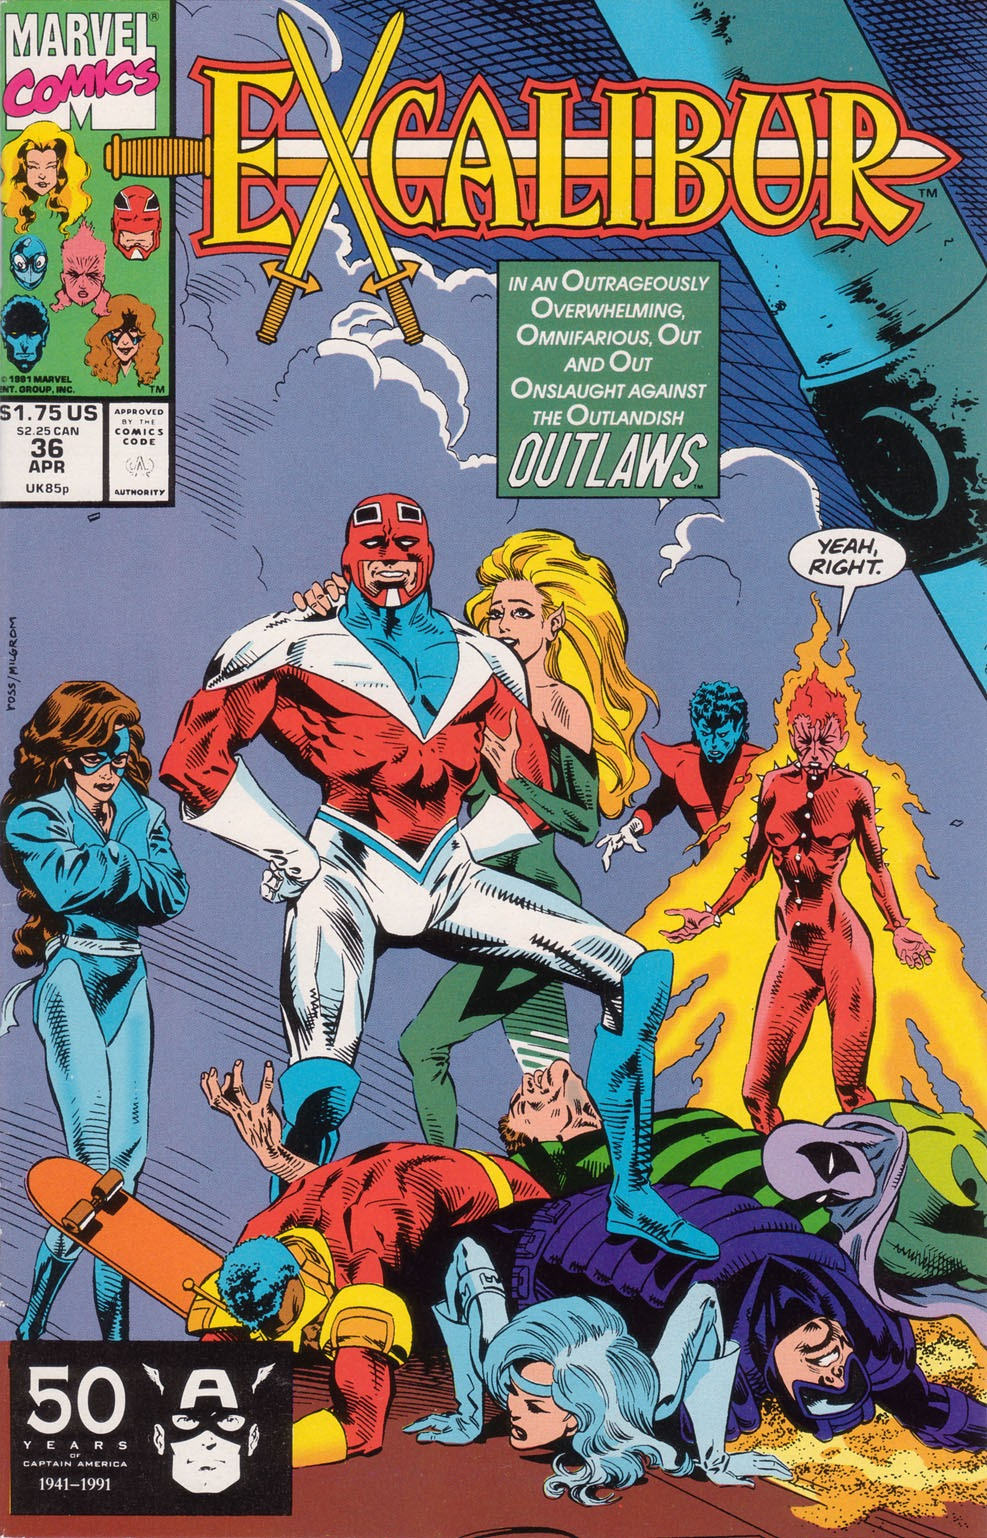 Excalibur (1988) issue 36 - Page 1